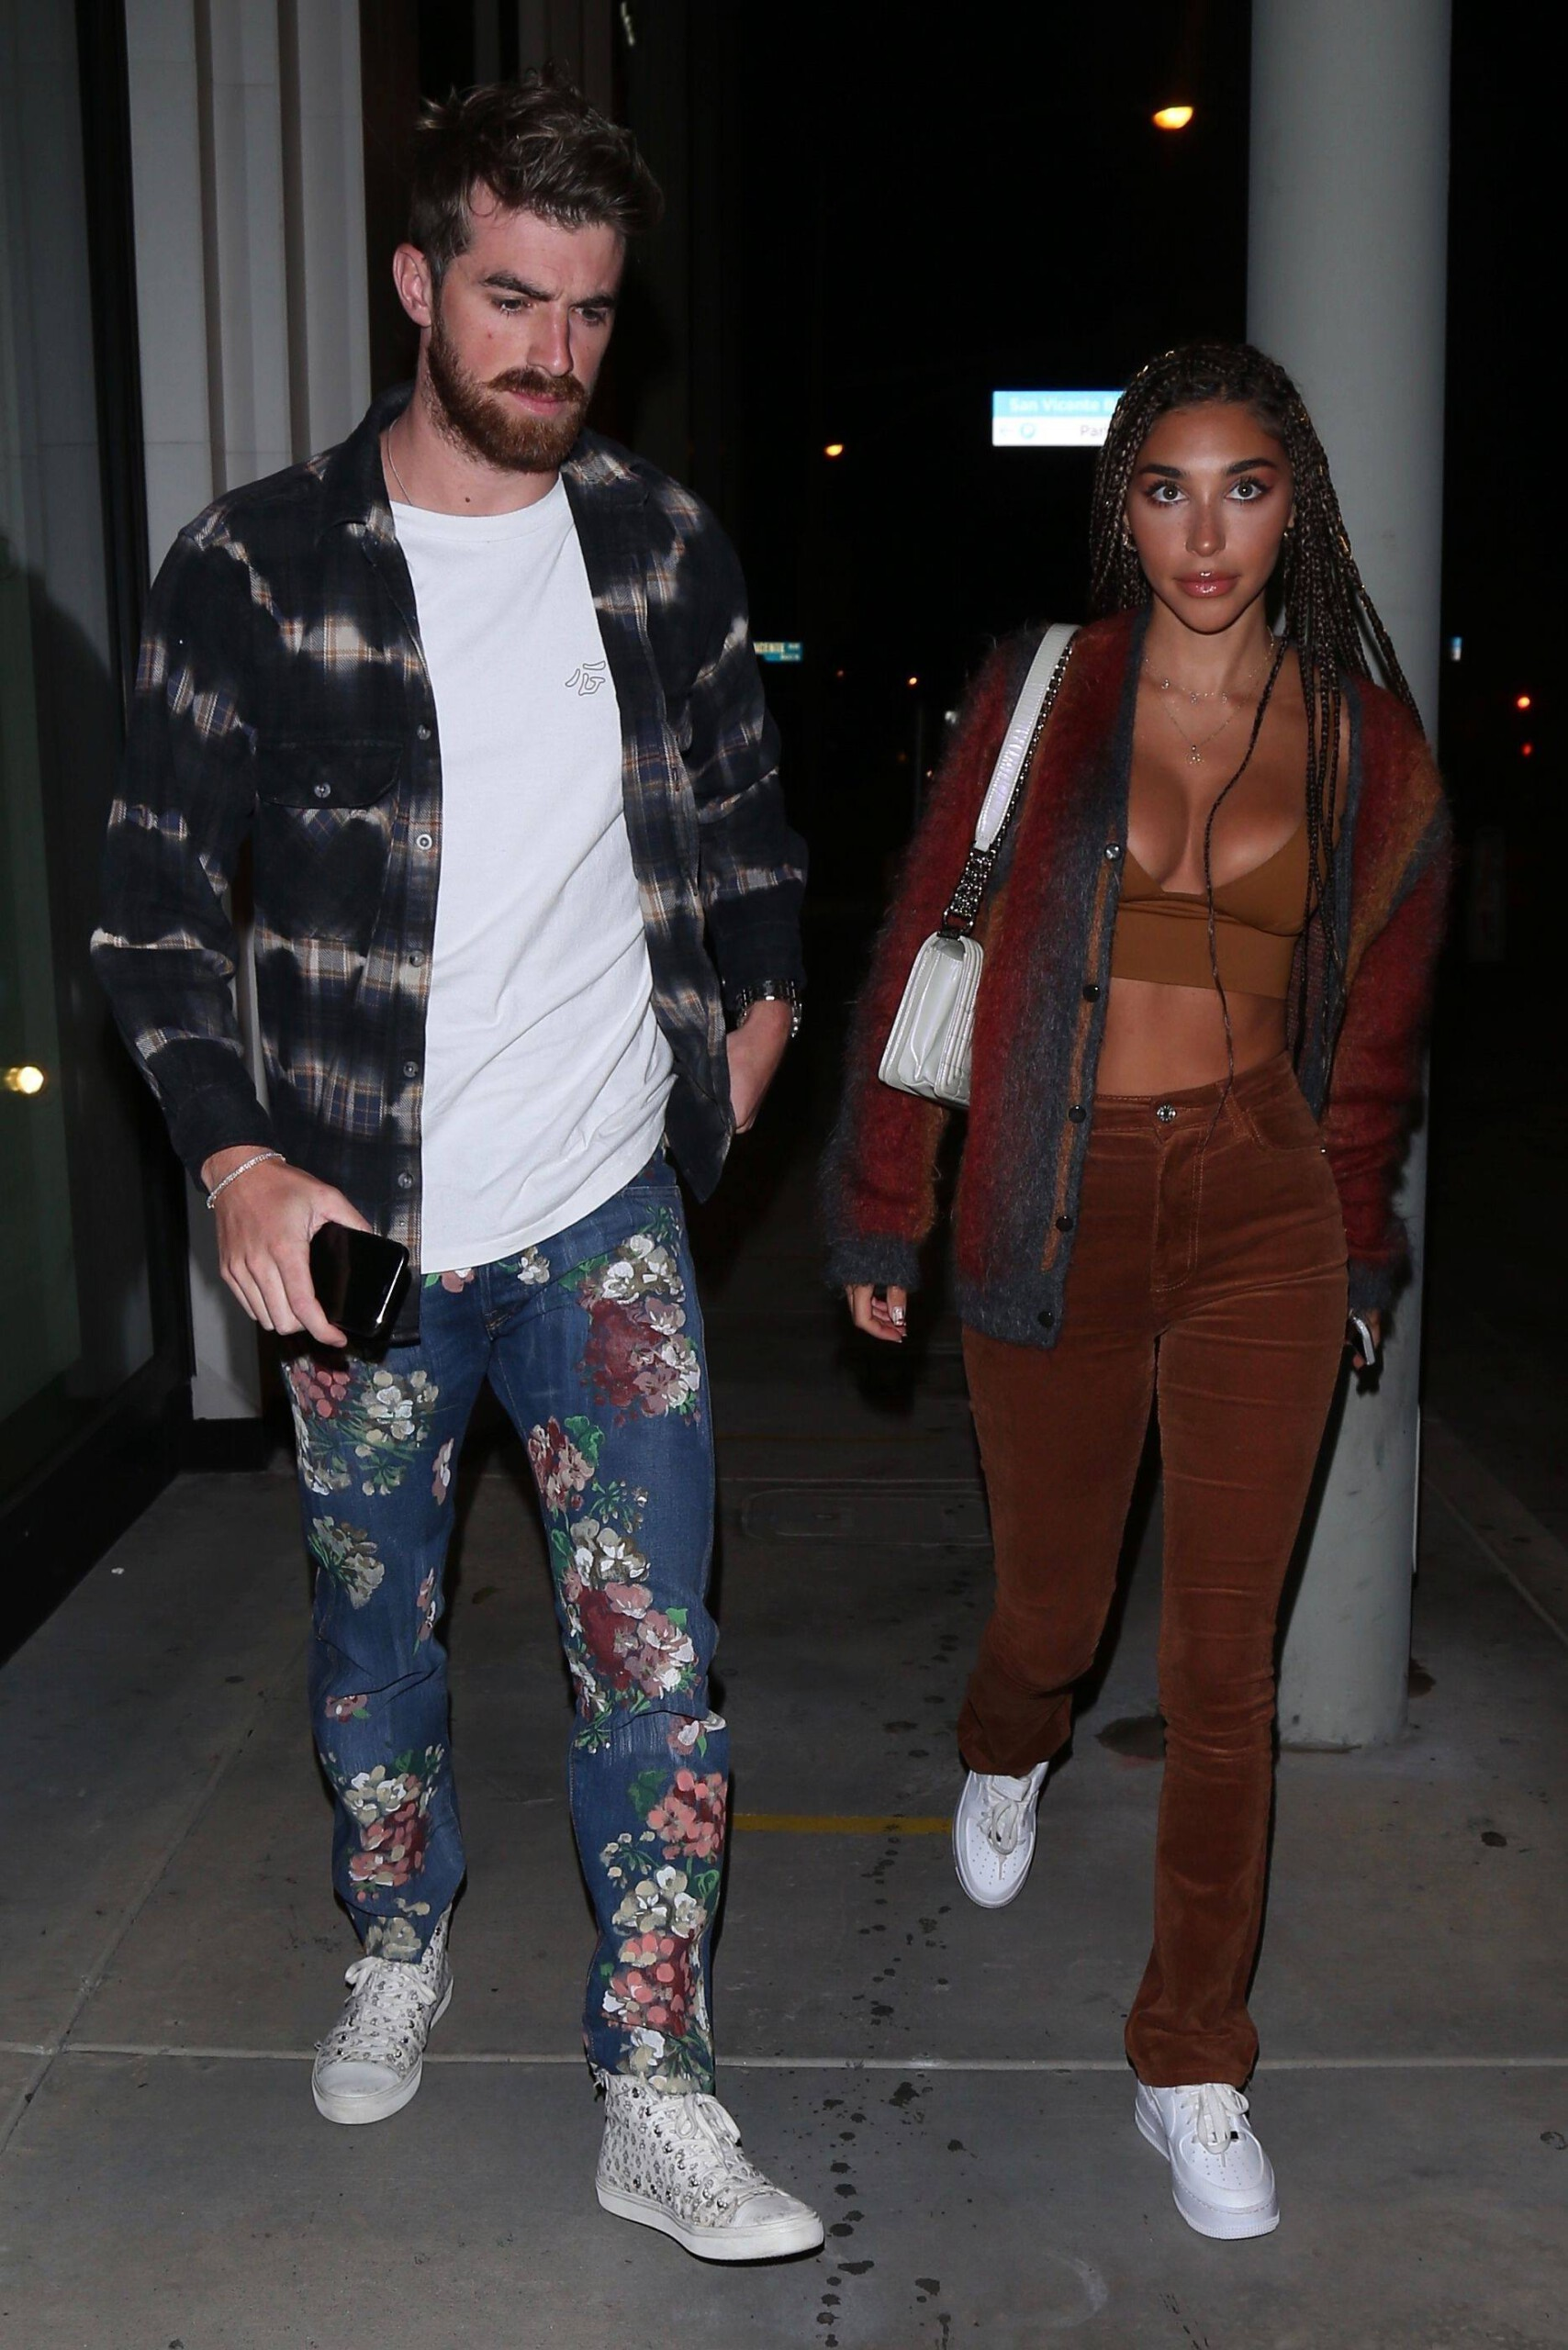 Chantel Jeffries – Sexy Boobs In Big Cleavage At Catch Restaurant In West Hollywood 0006